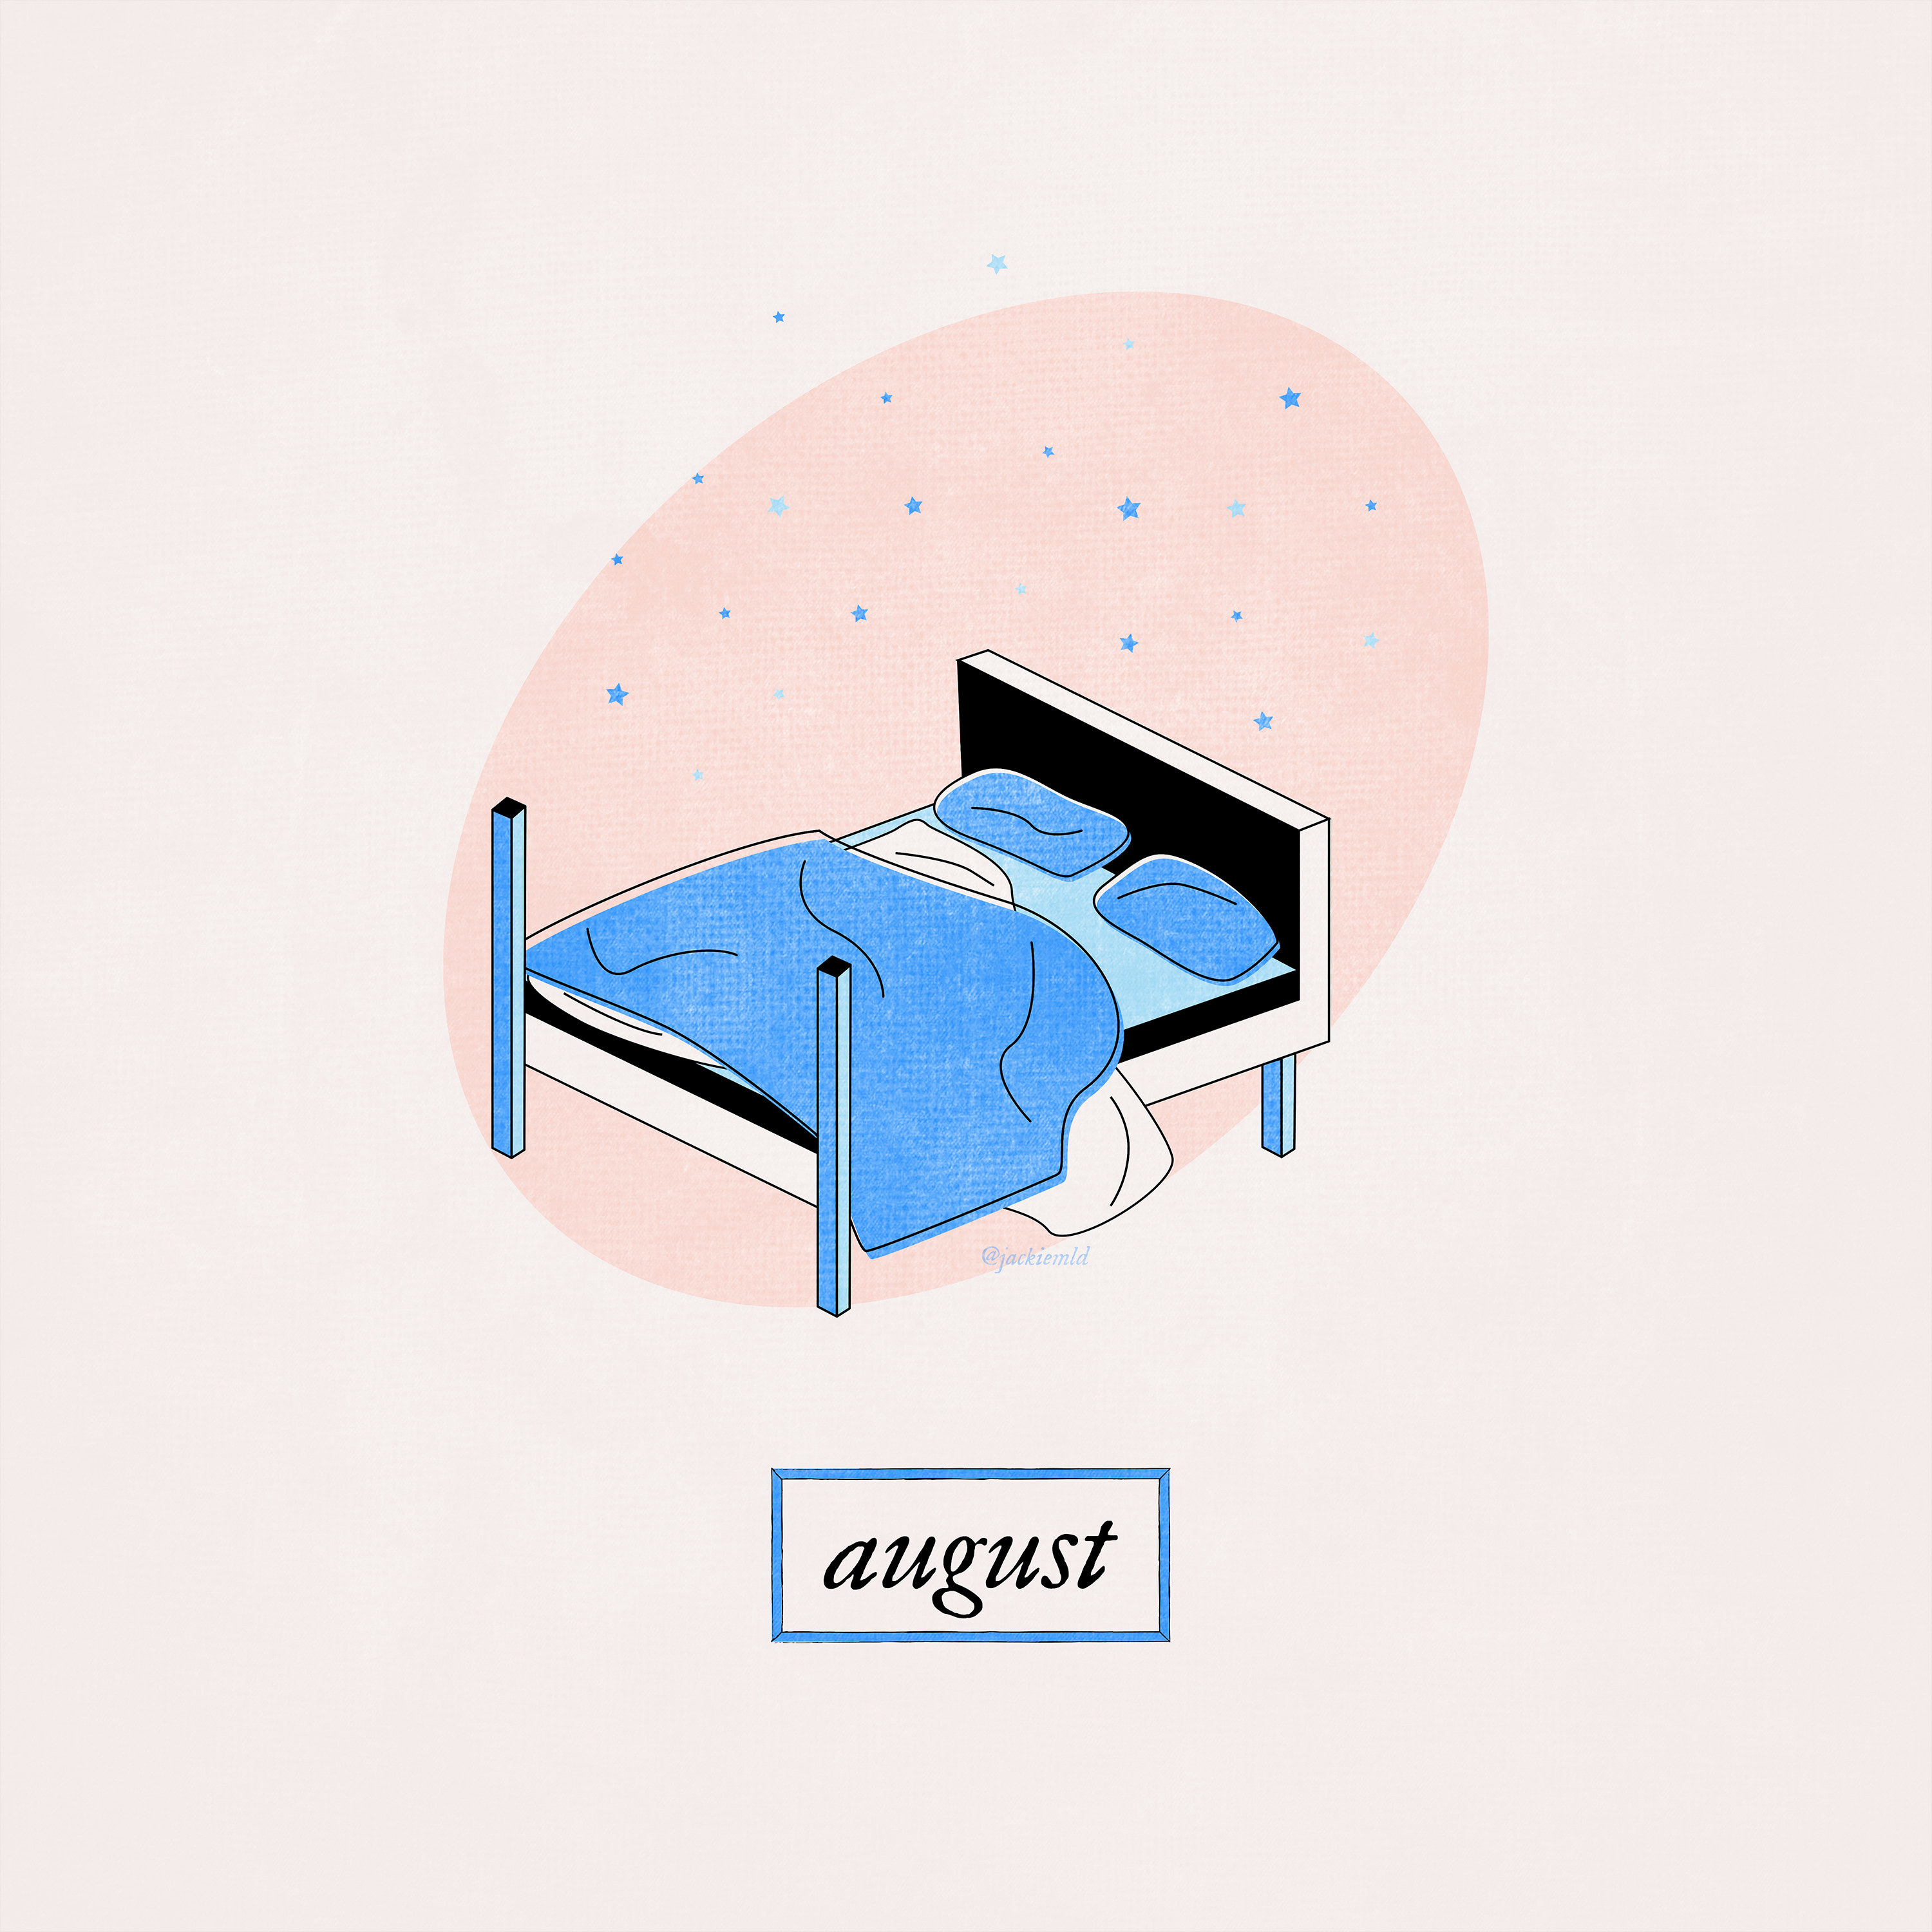 An unmade bed with tiny stars swirling around it